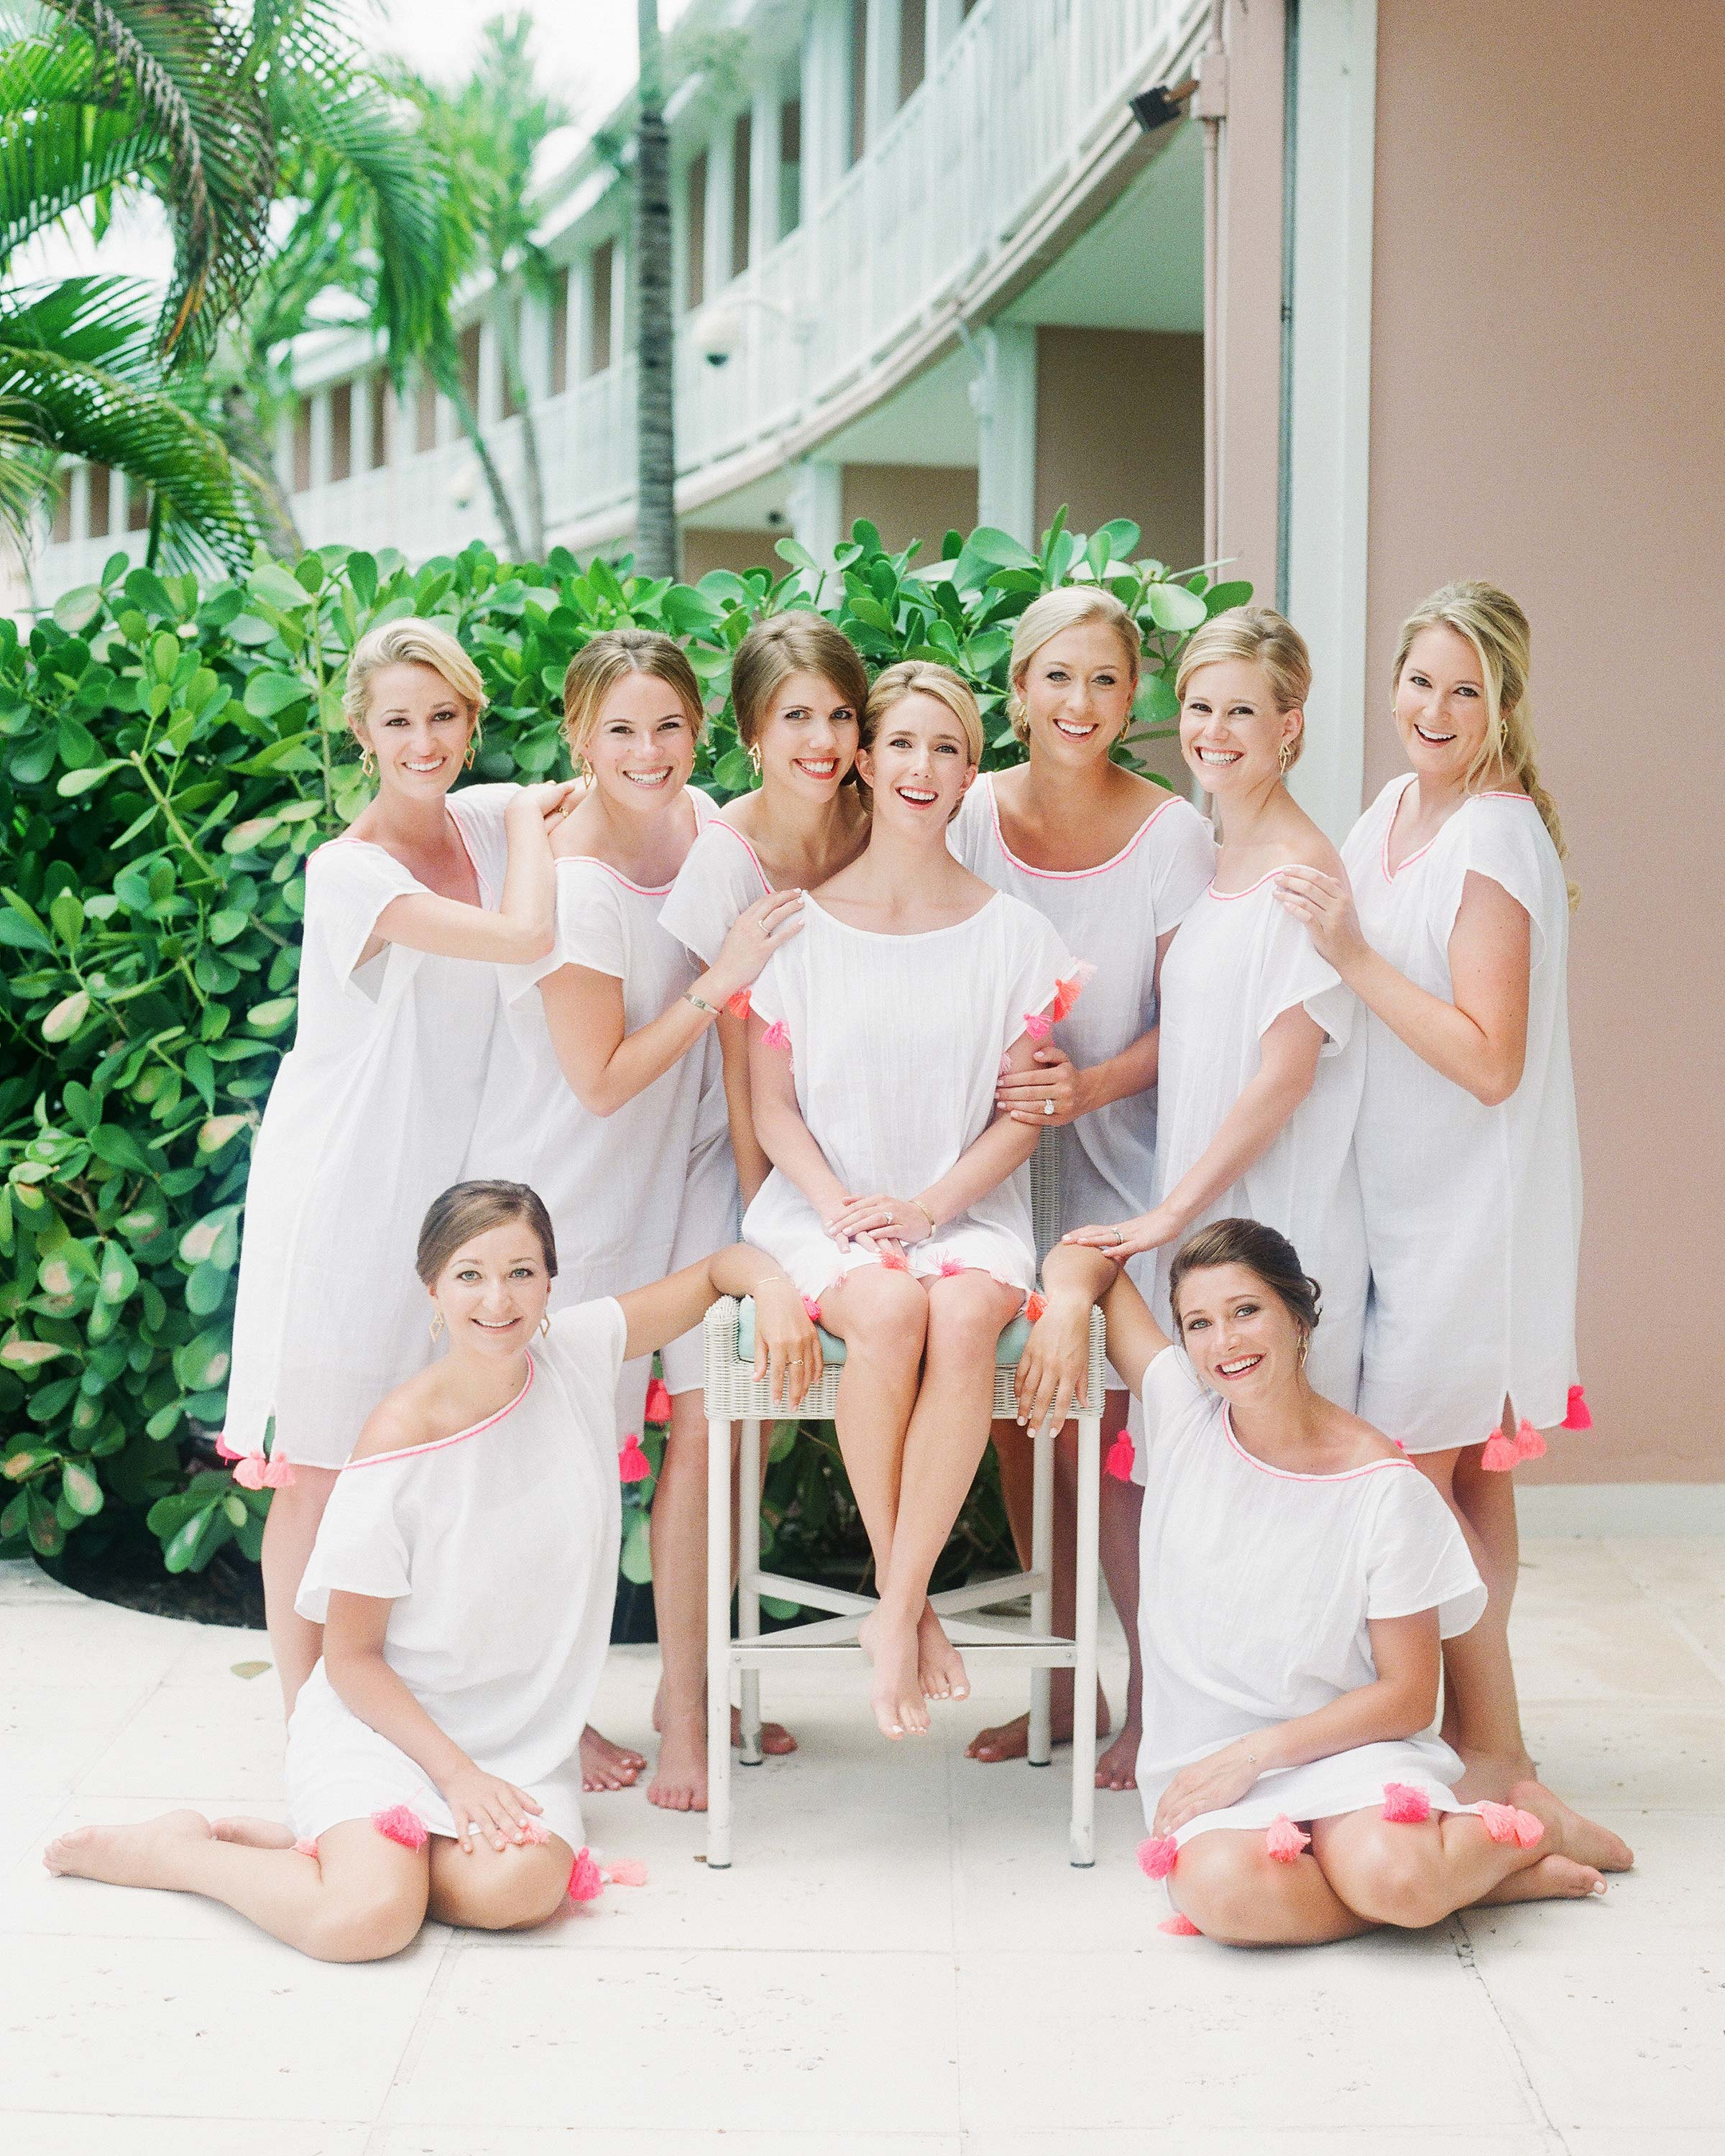 kelsey-casey-wedding-bahamas-bridesmaids-gettingready-0020-1800-s112804.jpg